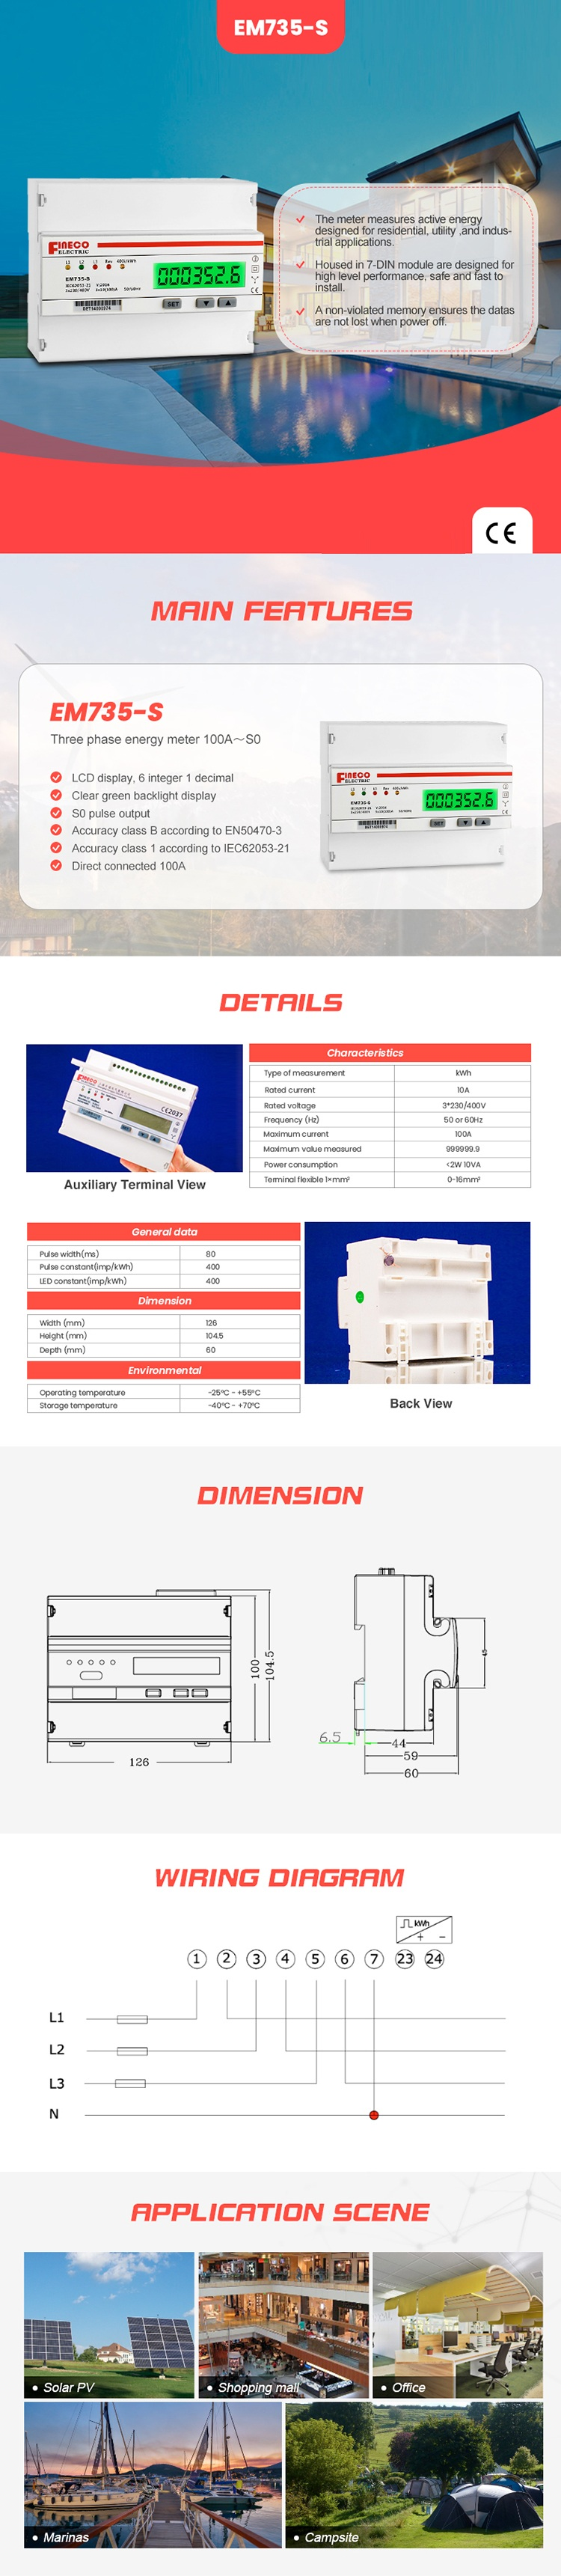 Phase Wire Meter Diagram on